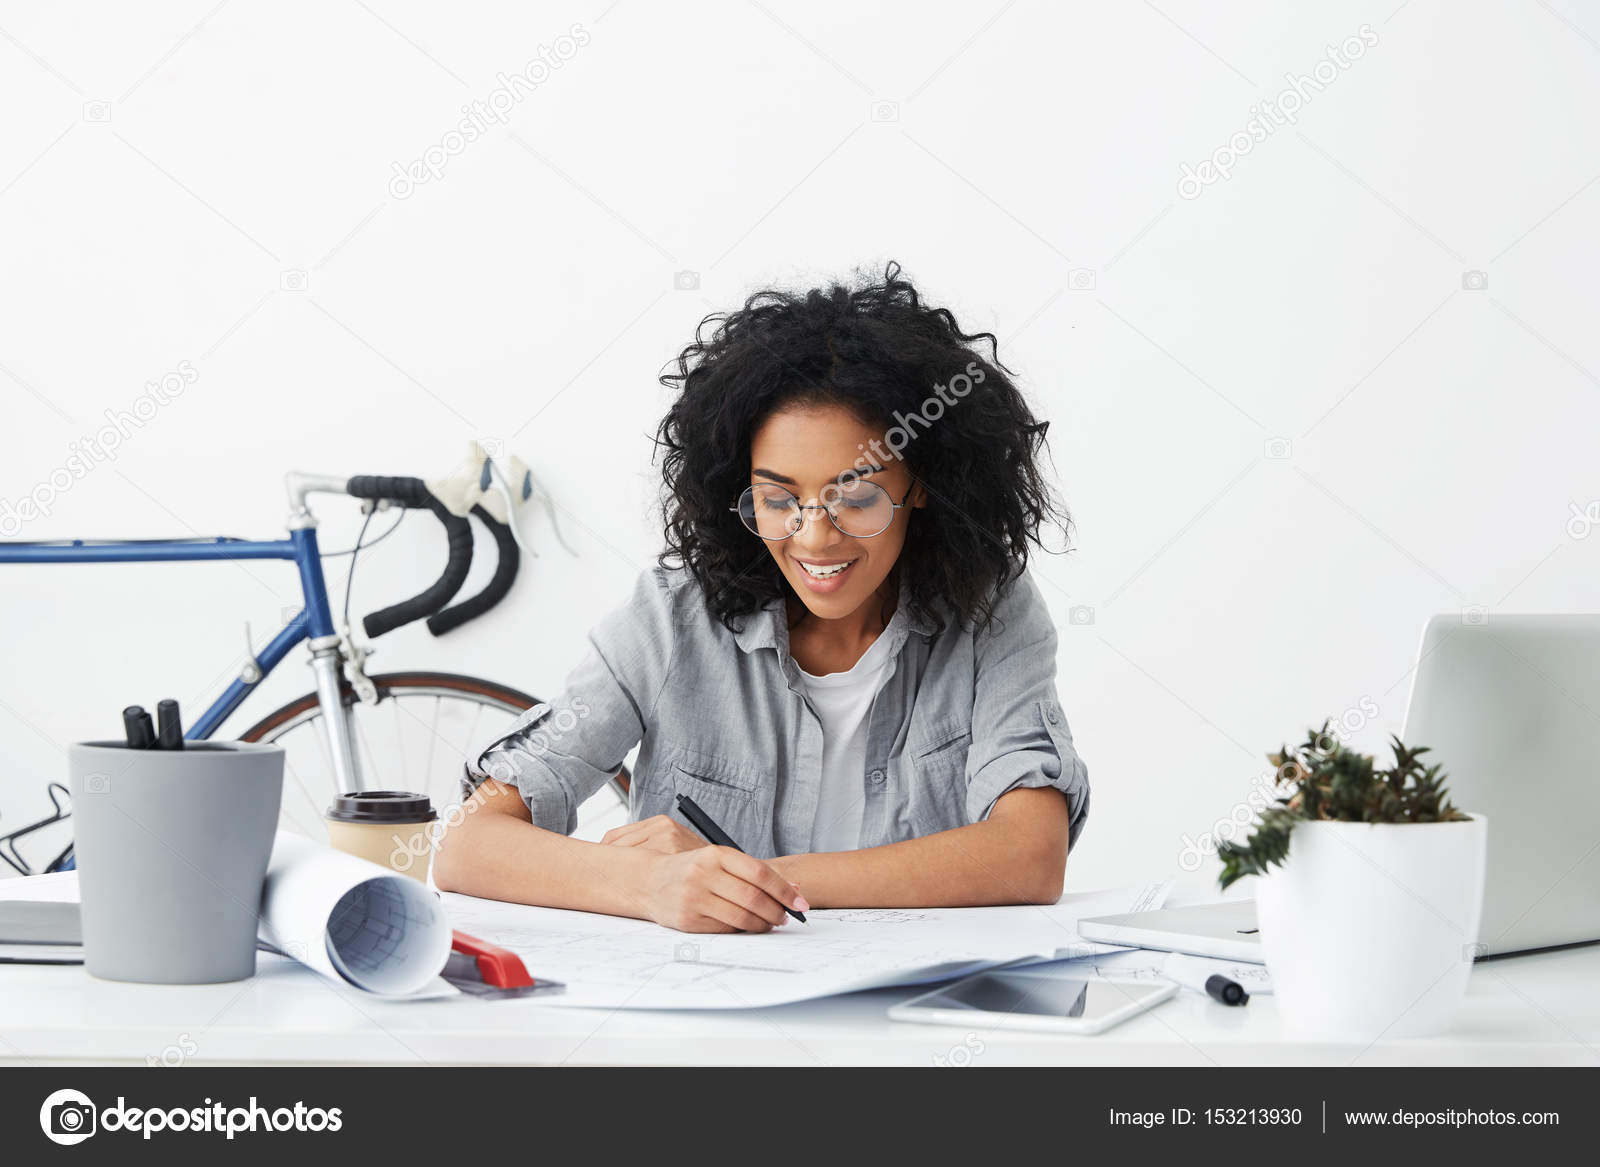 Student Studying Architecture And Construction U2014 Stock Photo #153213930